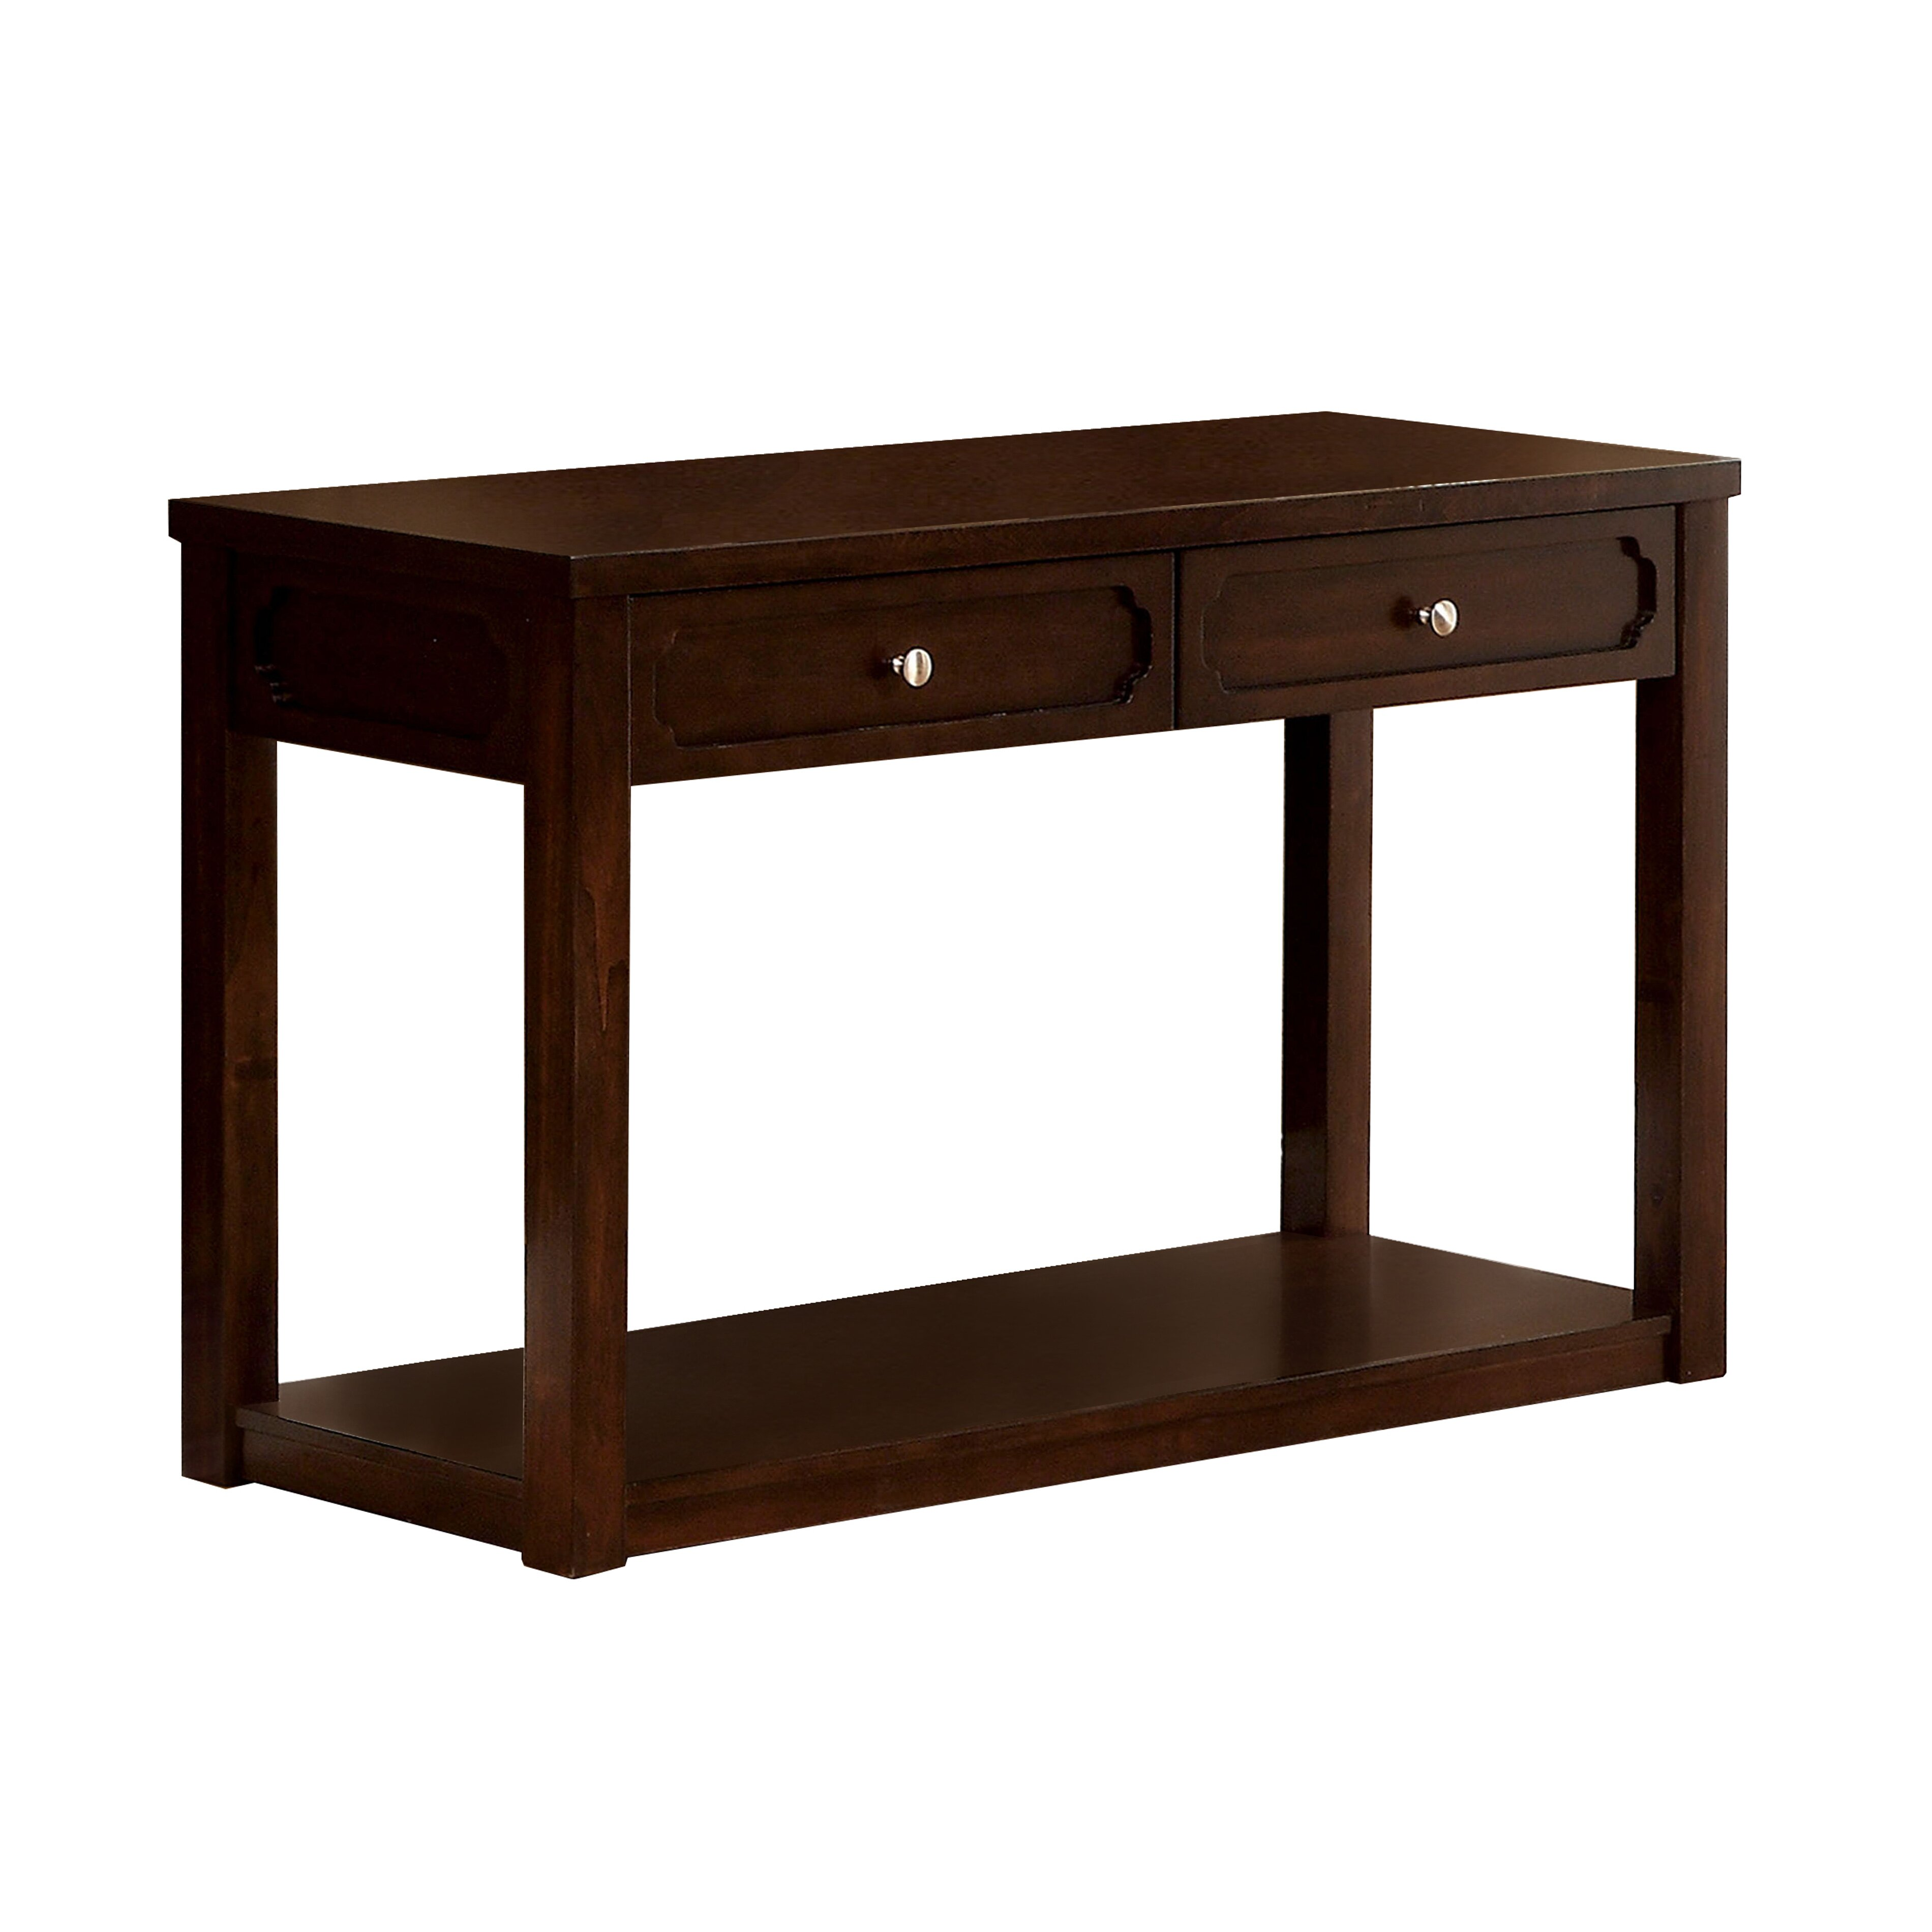 hokku designs virotte console table reviews. Black Bedroom Furniture Sets. Home Design Ideas